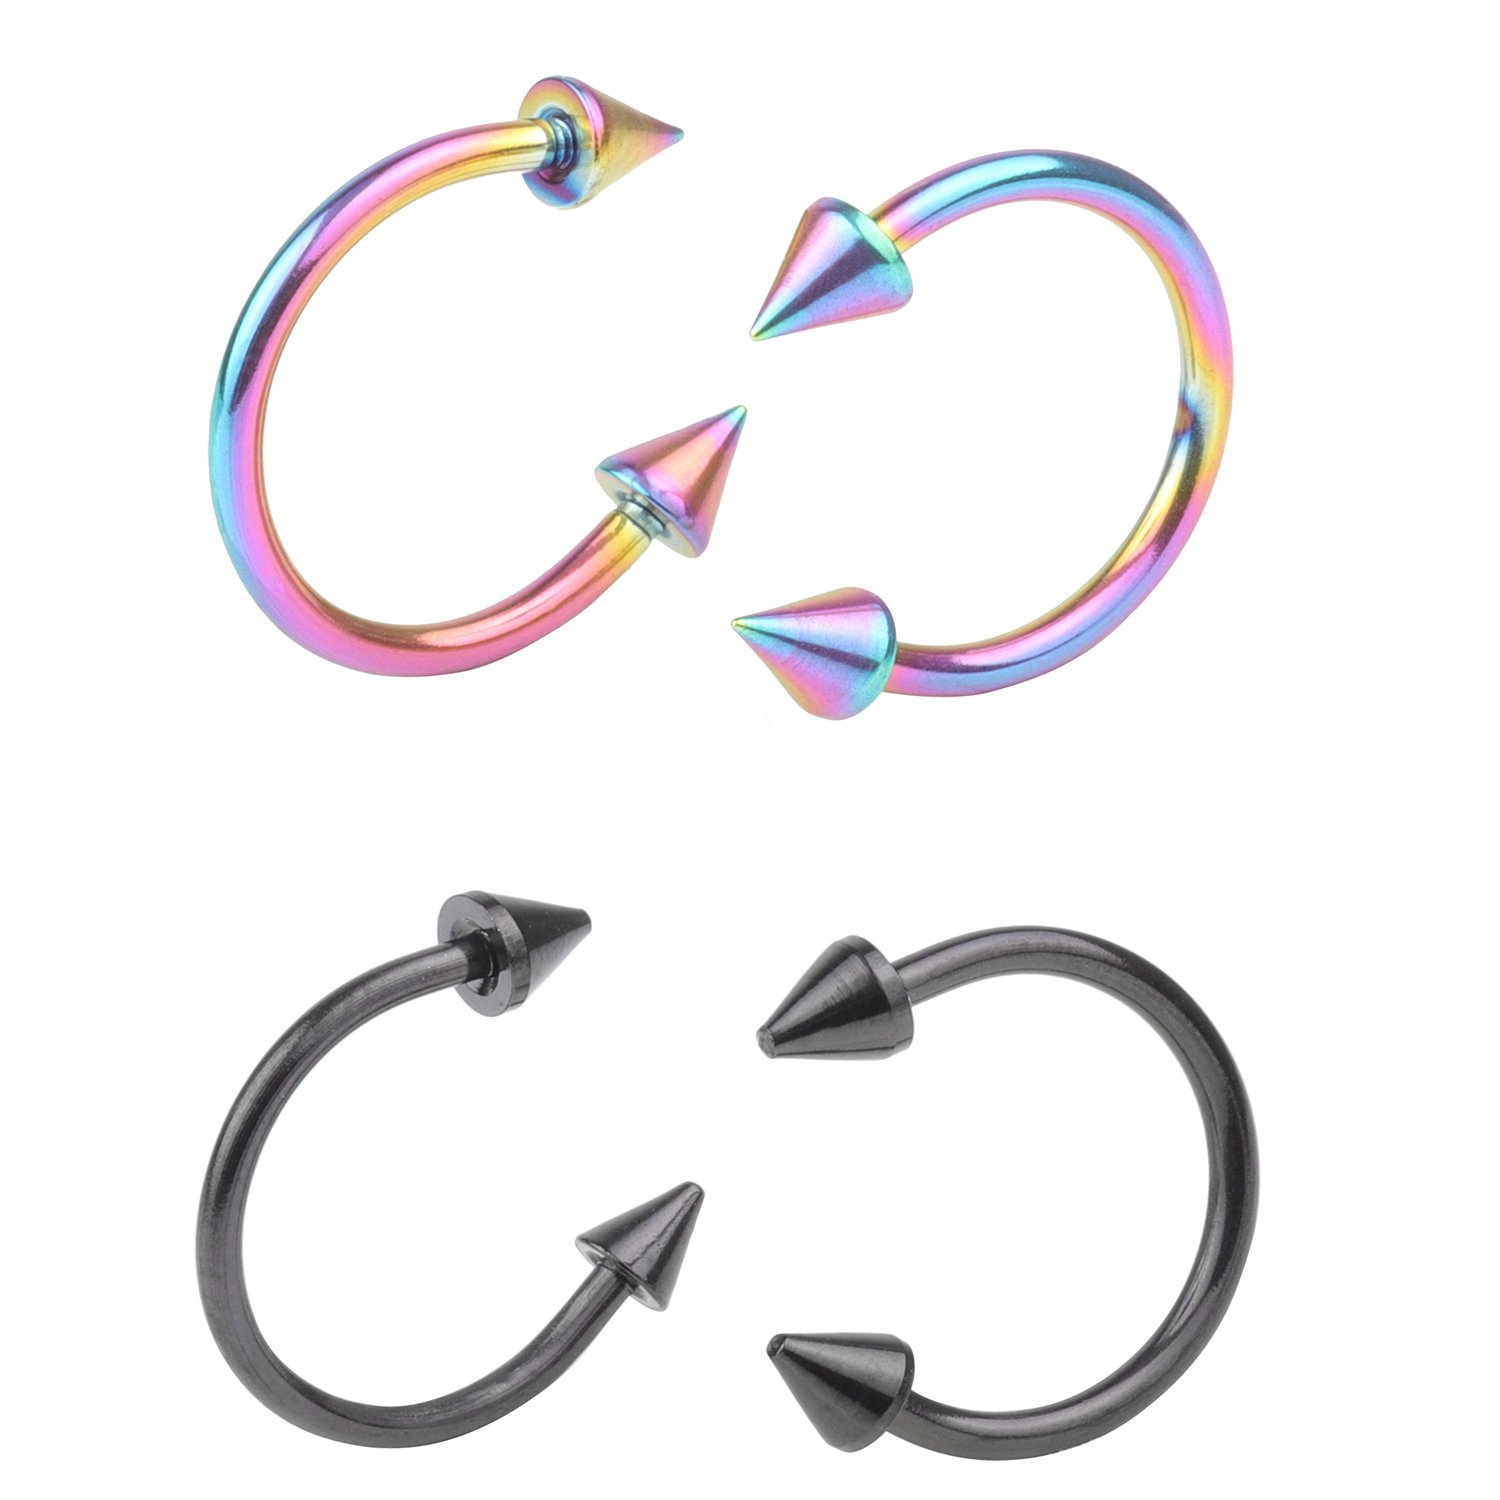 DRW 4-8pcs 16G Stainless Steel Multi-functional LipNoseNippleEyebrown Captive Hoop Ring Barbell Tragus Cartilage Stud Earrings 3mm Spike 10mm